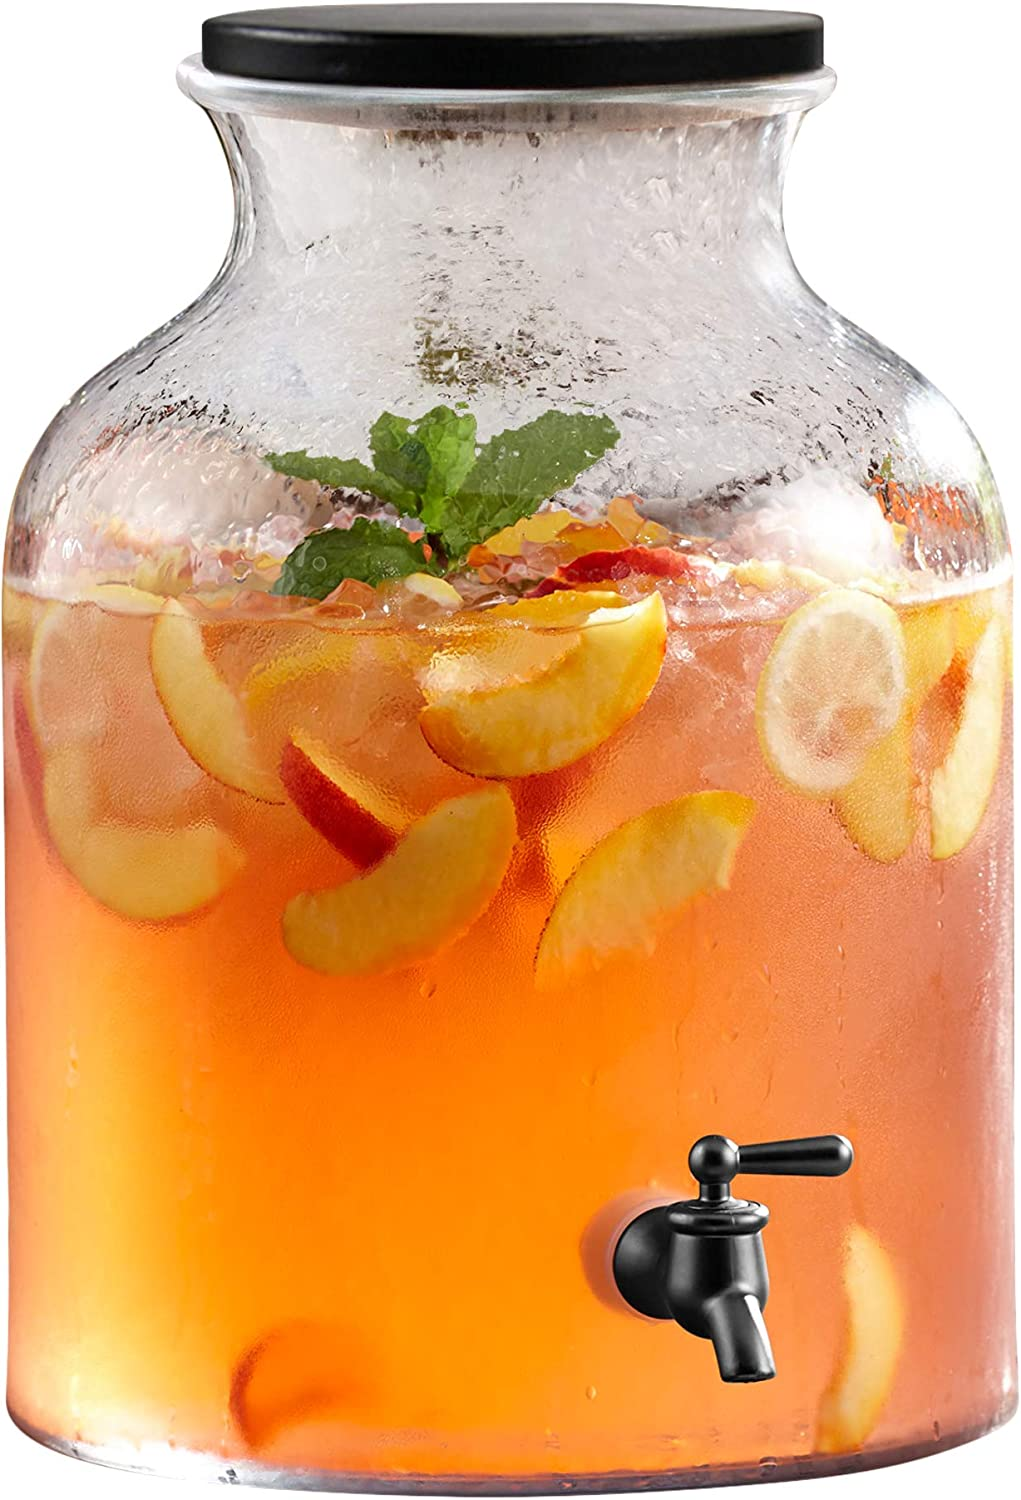 Elle Decor Beverage Dispenser Cold Drink Dispenser w/ 2.7 Gallon Capacity Glass Jug, Wood Lid & Leak-Proof Acrylic Spigot, Great for Parties, Weddings & More